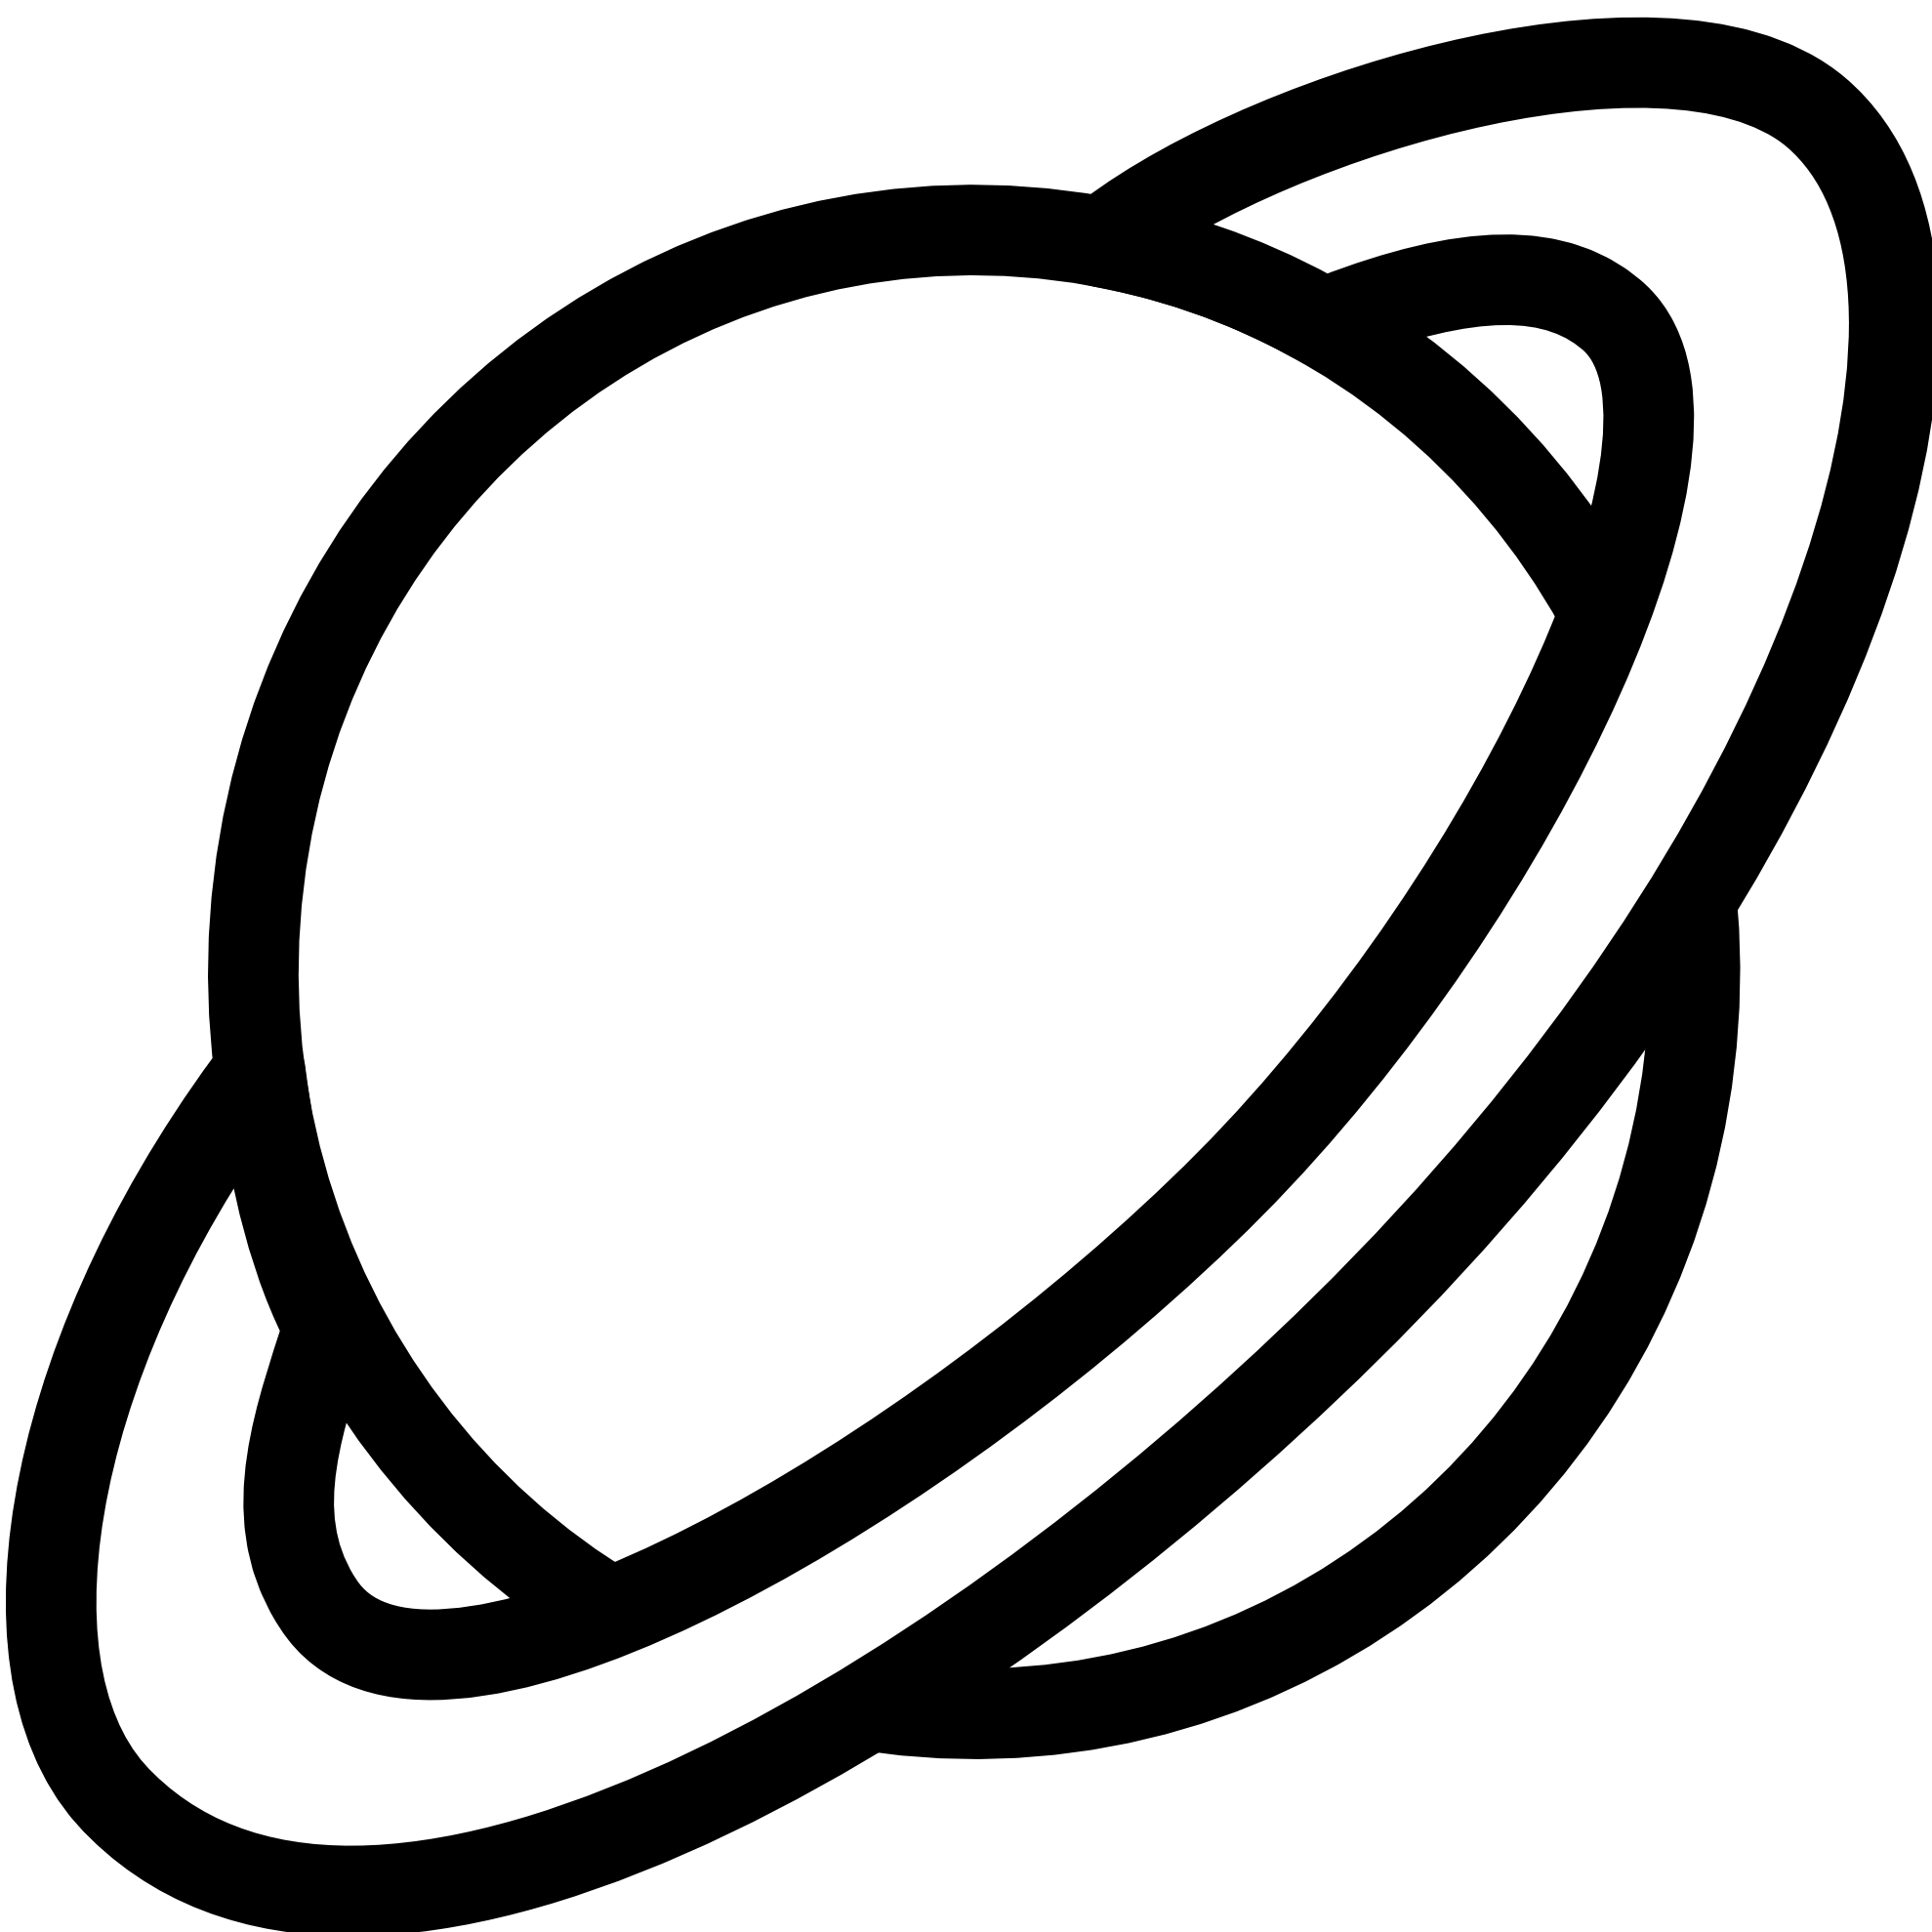 Planet black and white. Planets clipart face